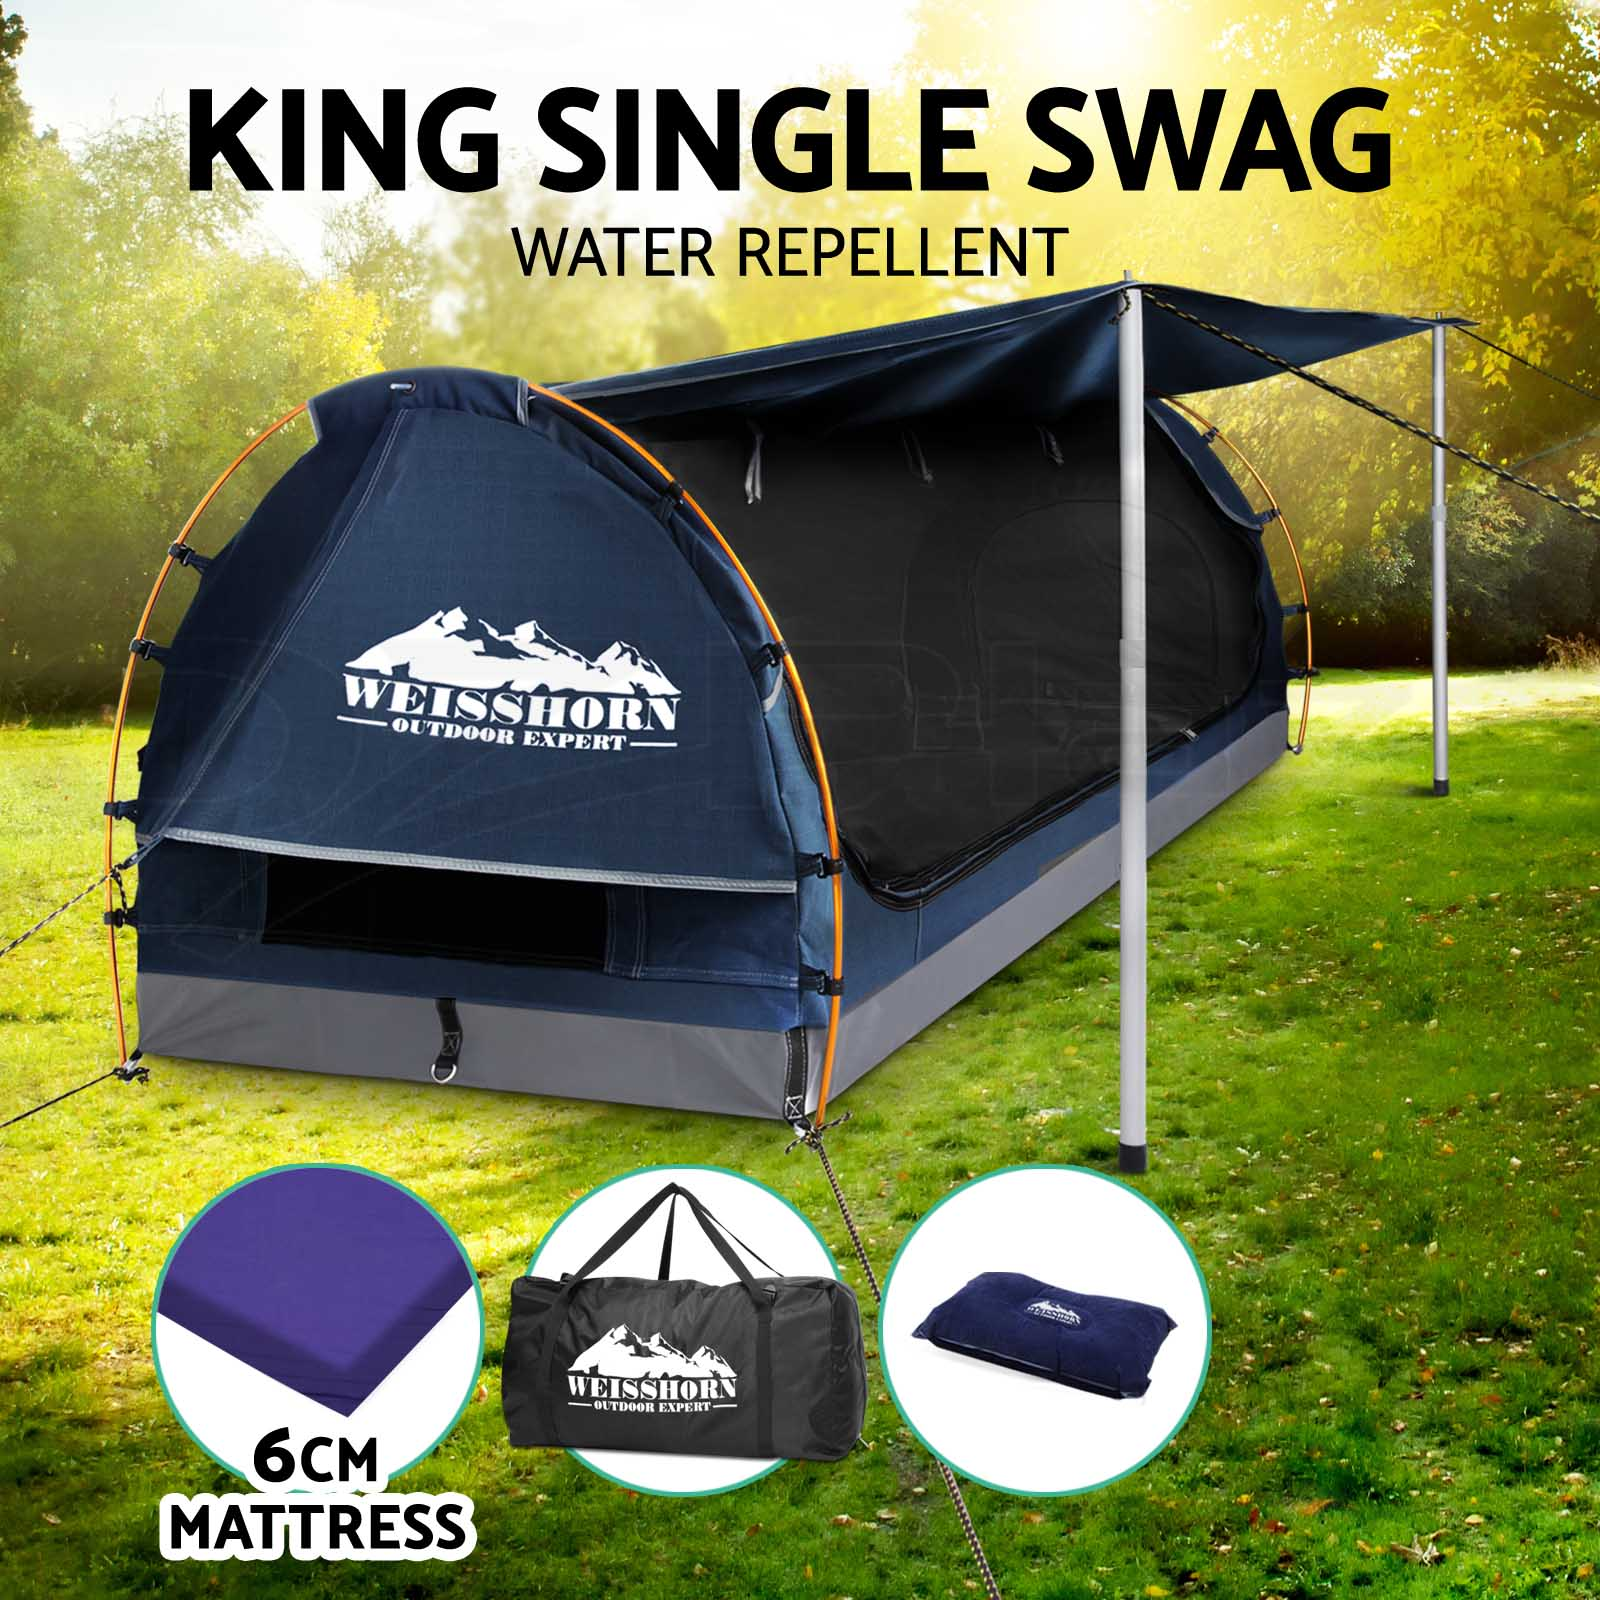 Weisshorn-Double-King-Single-Camping-Swags-Canvas-Free-Standing-Dome-Tent-Bag